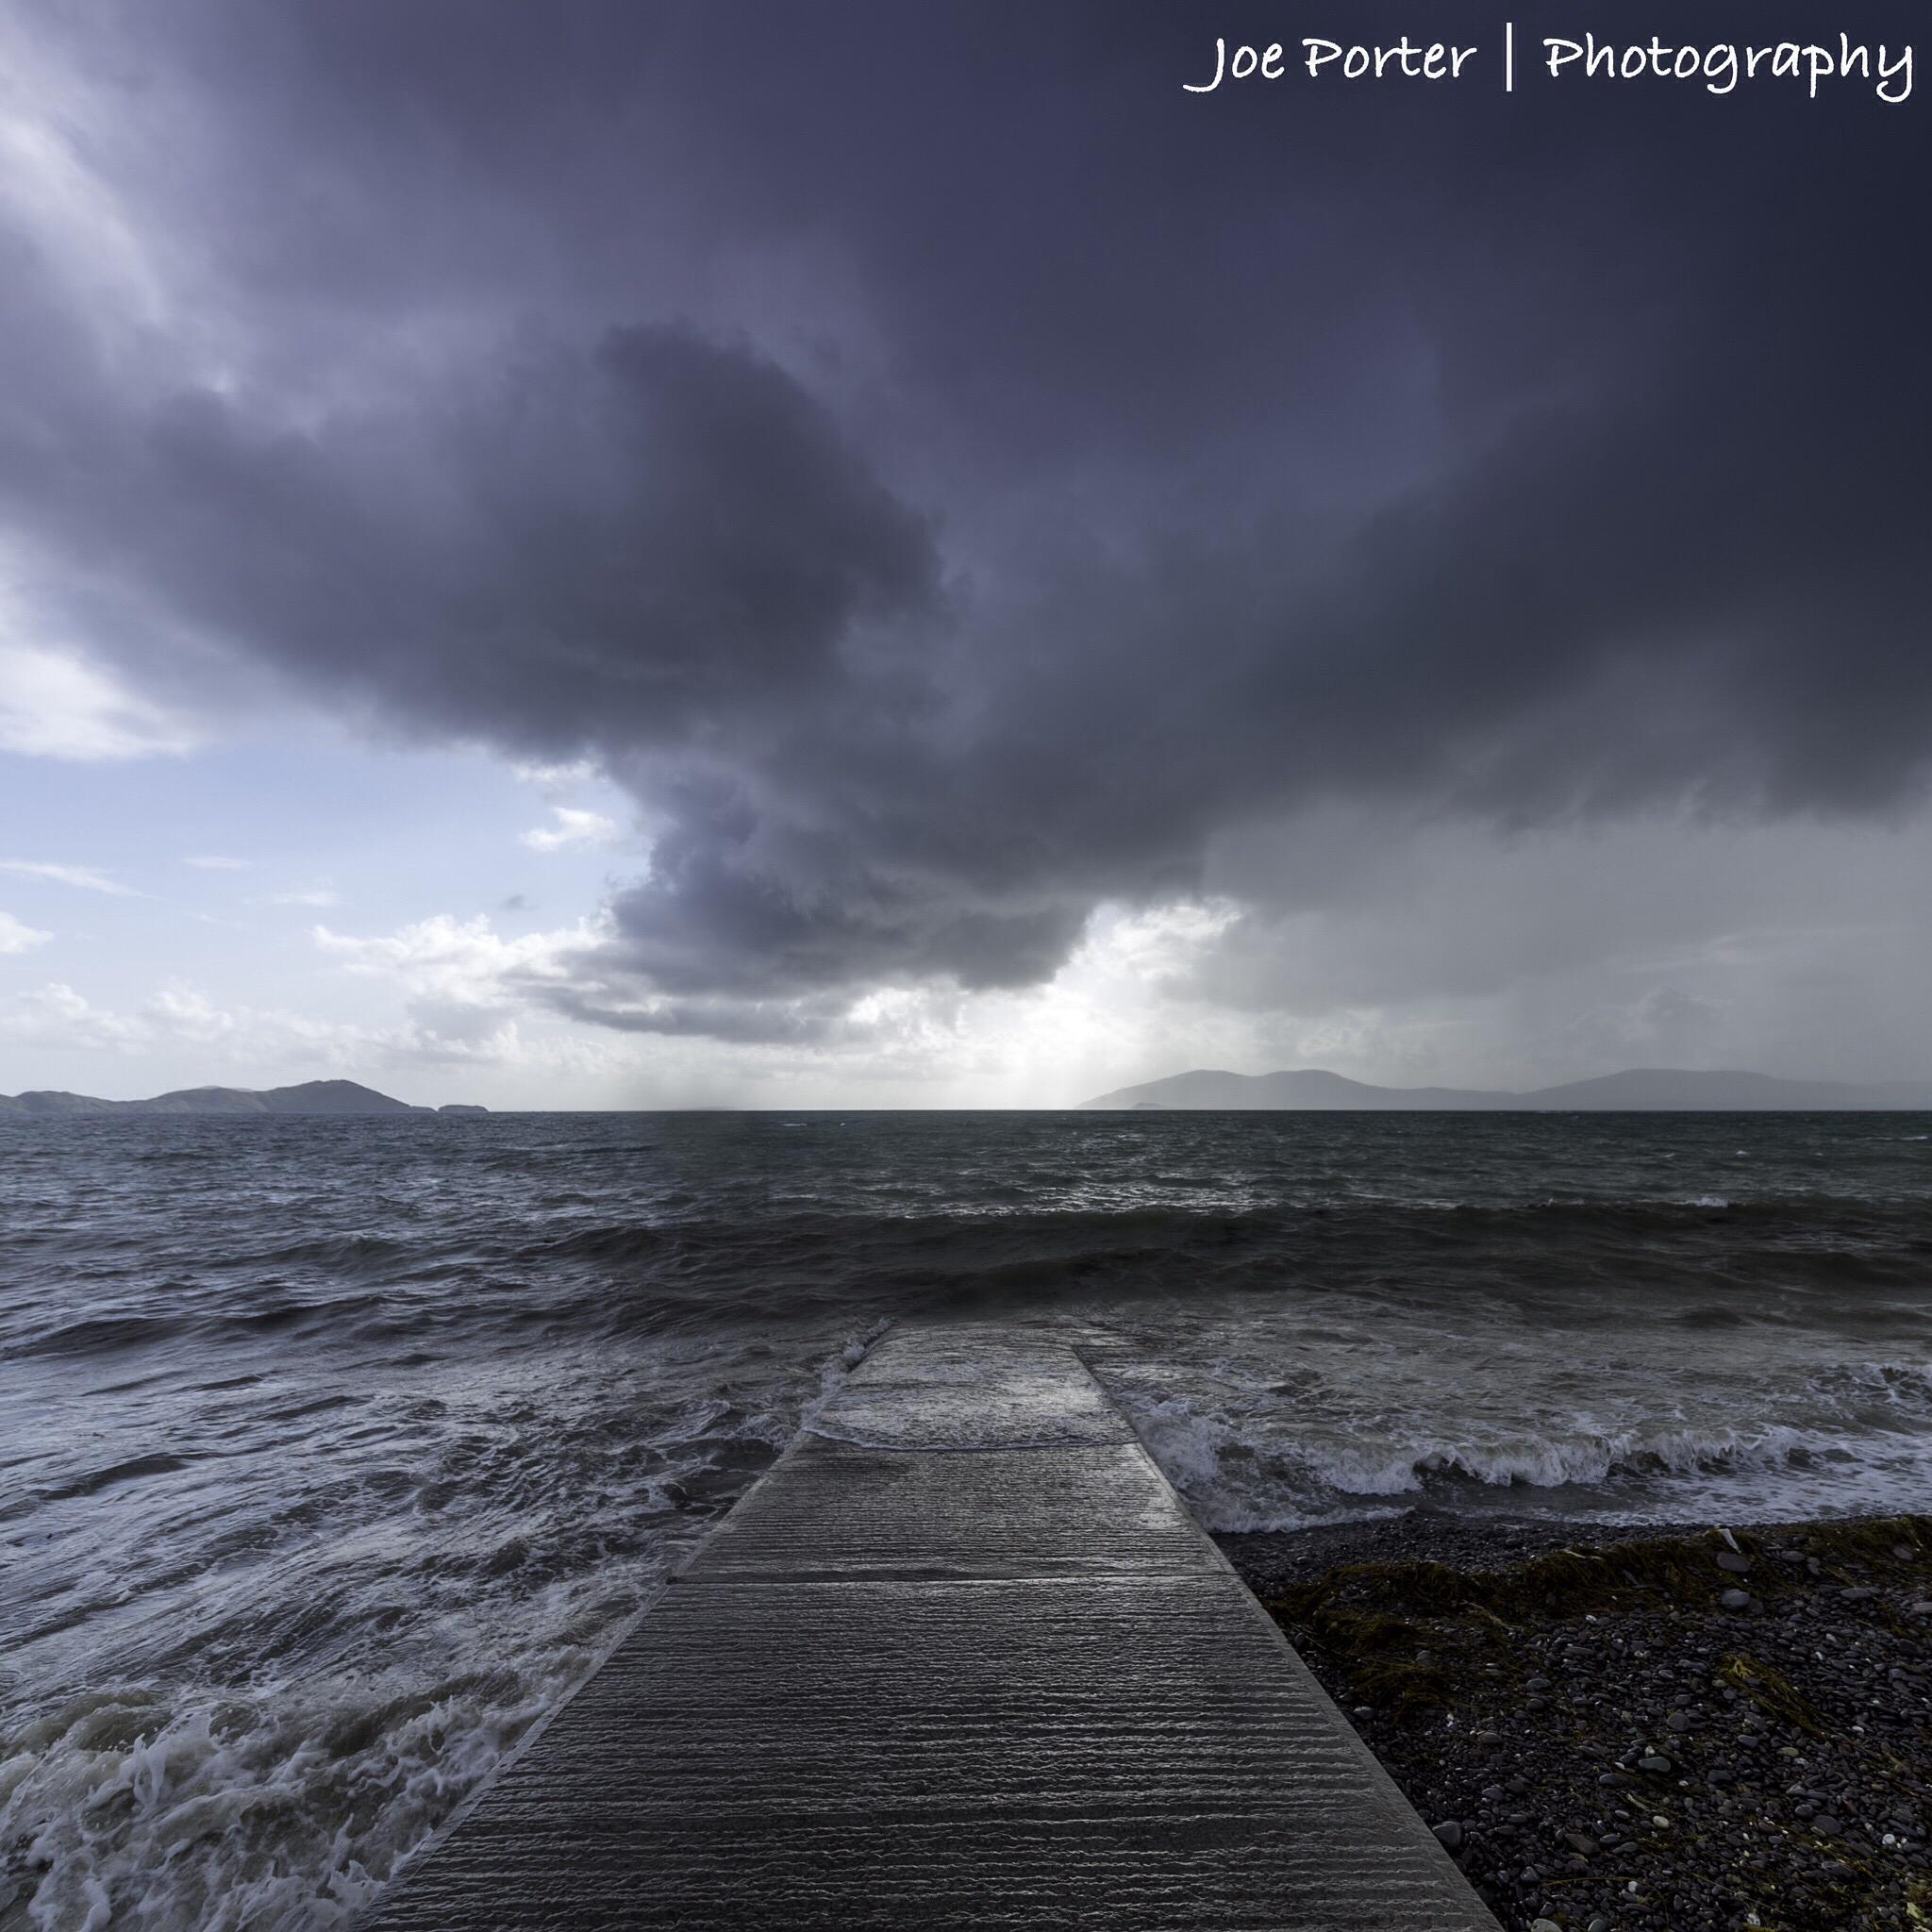 Rains Coming by Joe Porter Photography